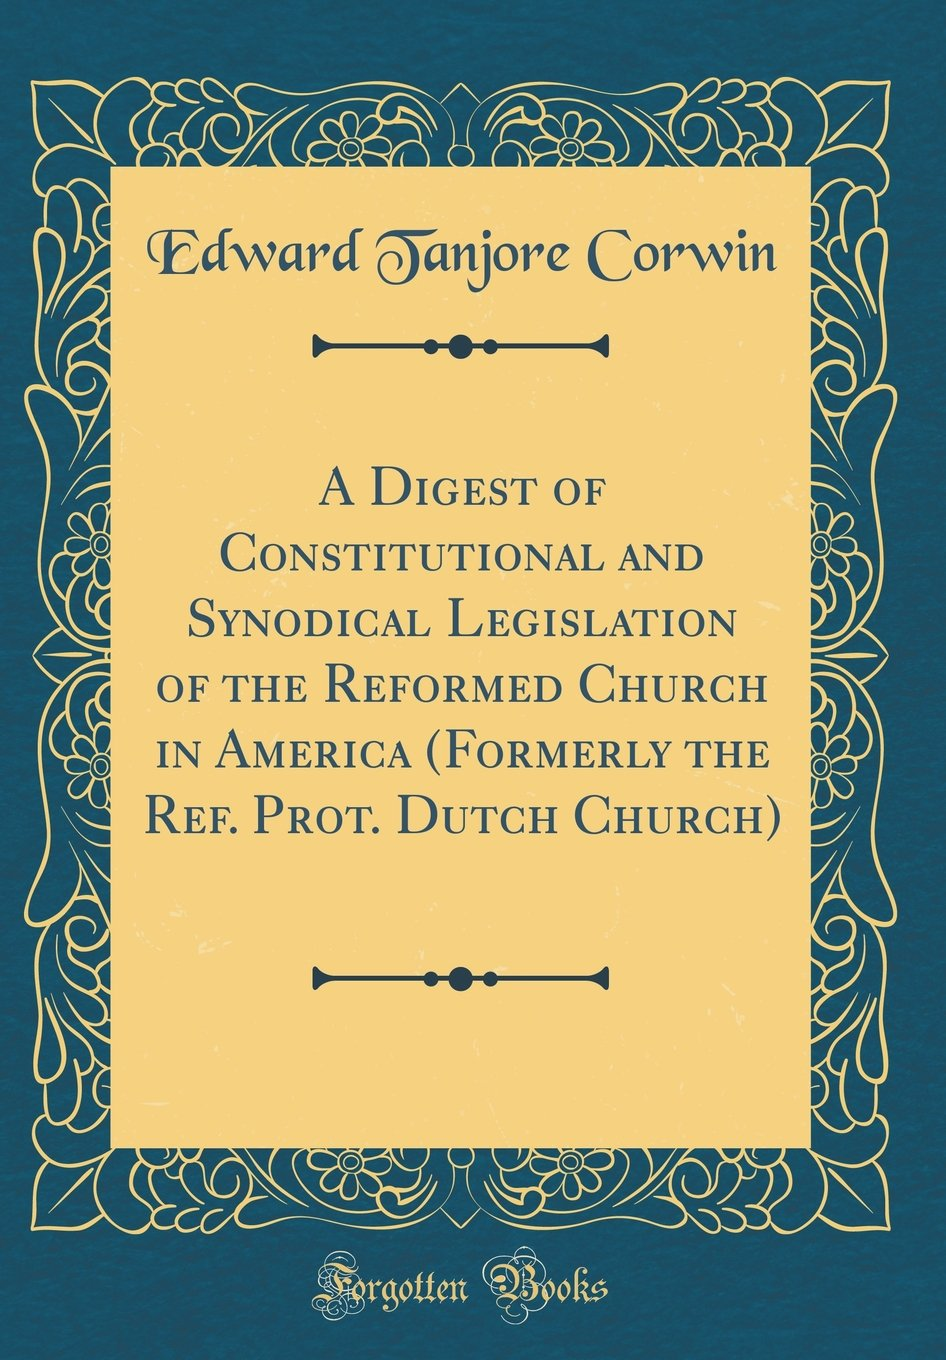 Read Online A Digest of Constitutional and Synodical Legislation of the Reformed Church in America (Formerly the Ref. Prot. Dutch Church) (Classic Reprint) ebook